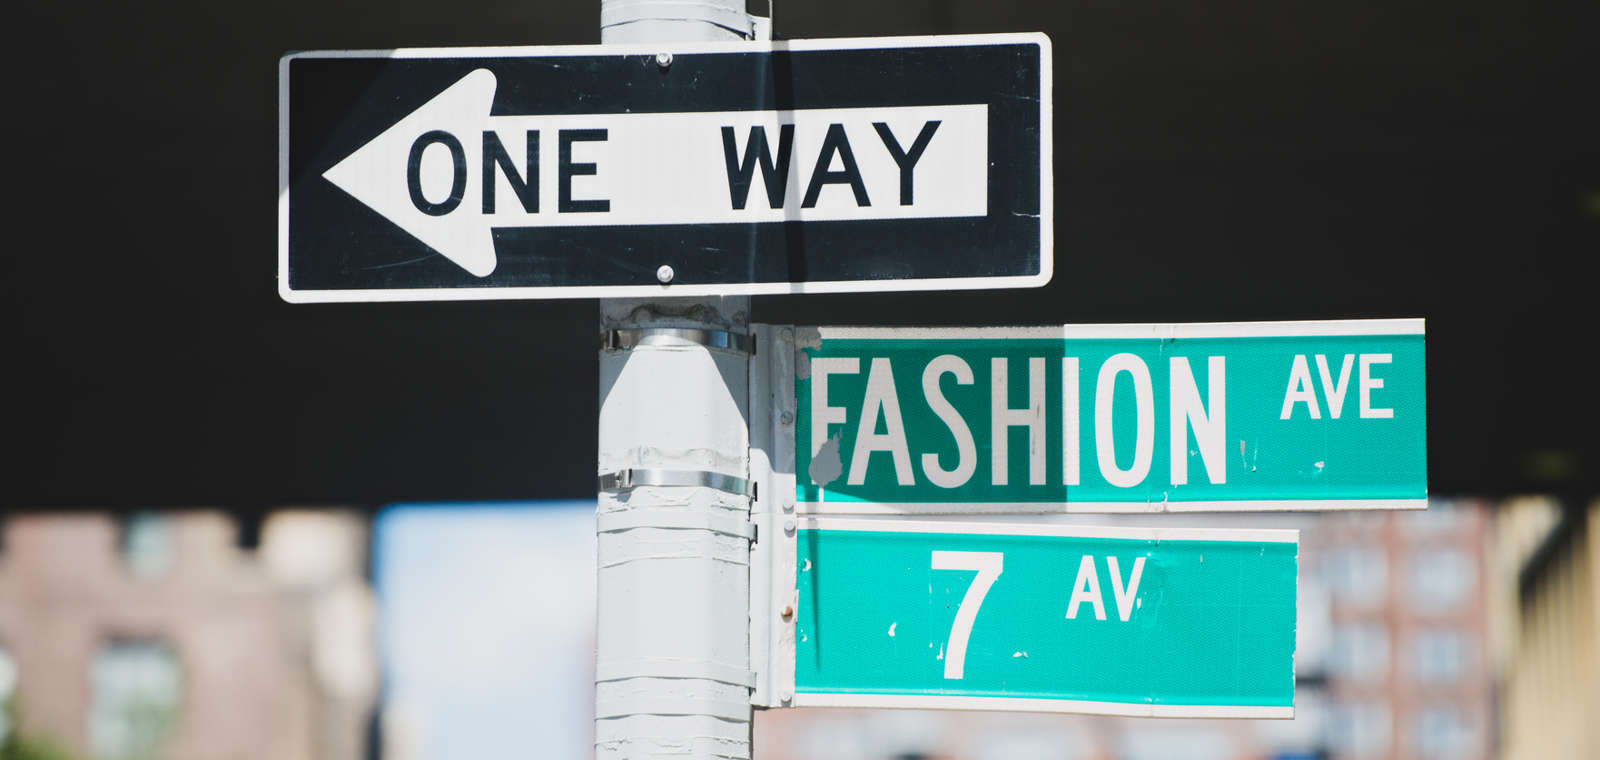 Street signs for Fashion Ave and & Ave in NYC